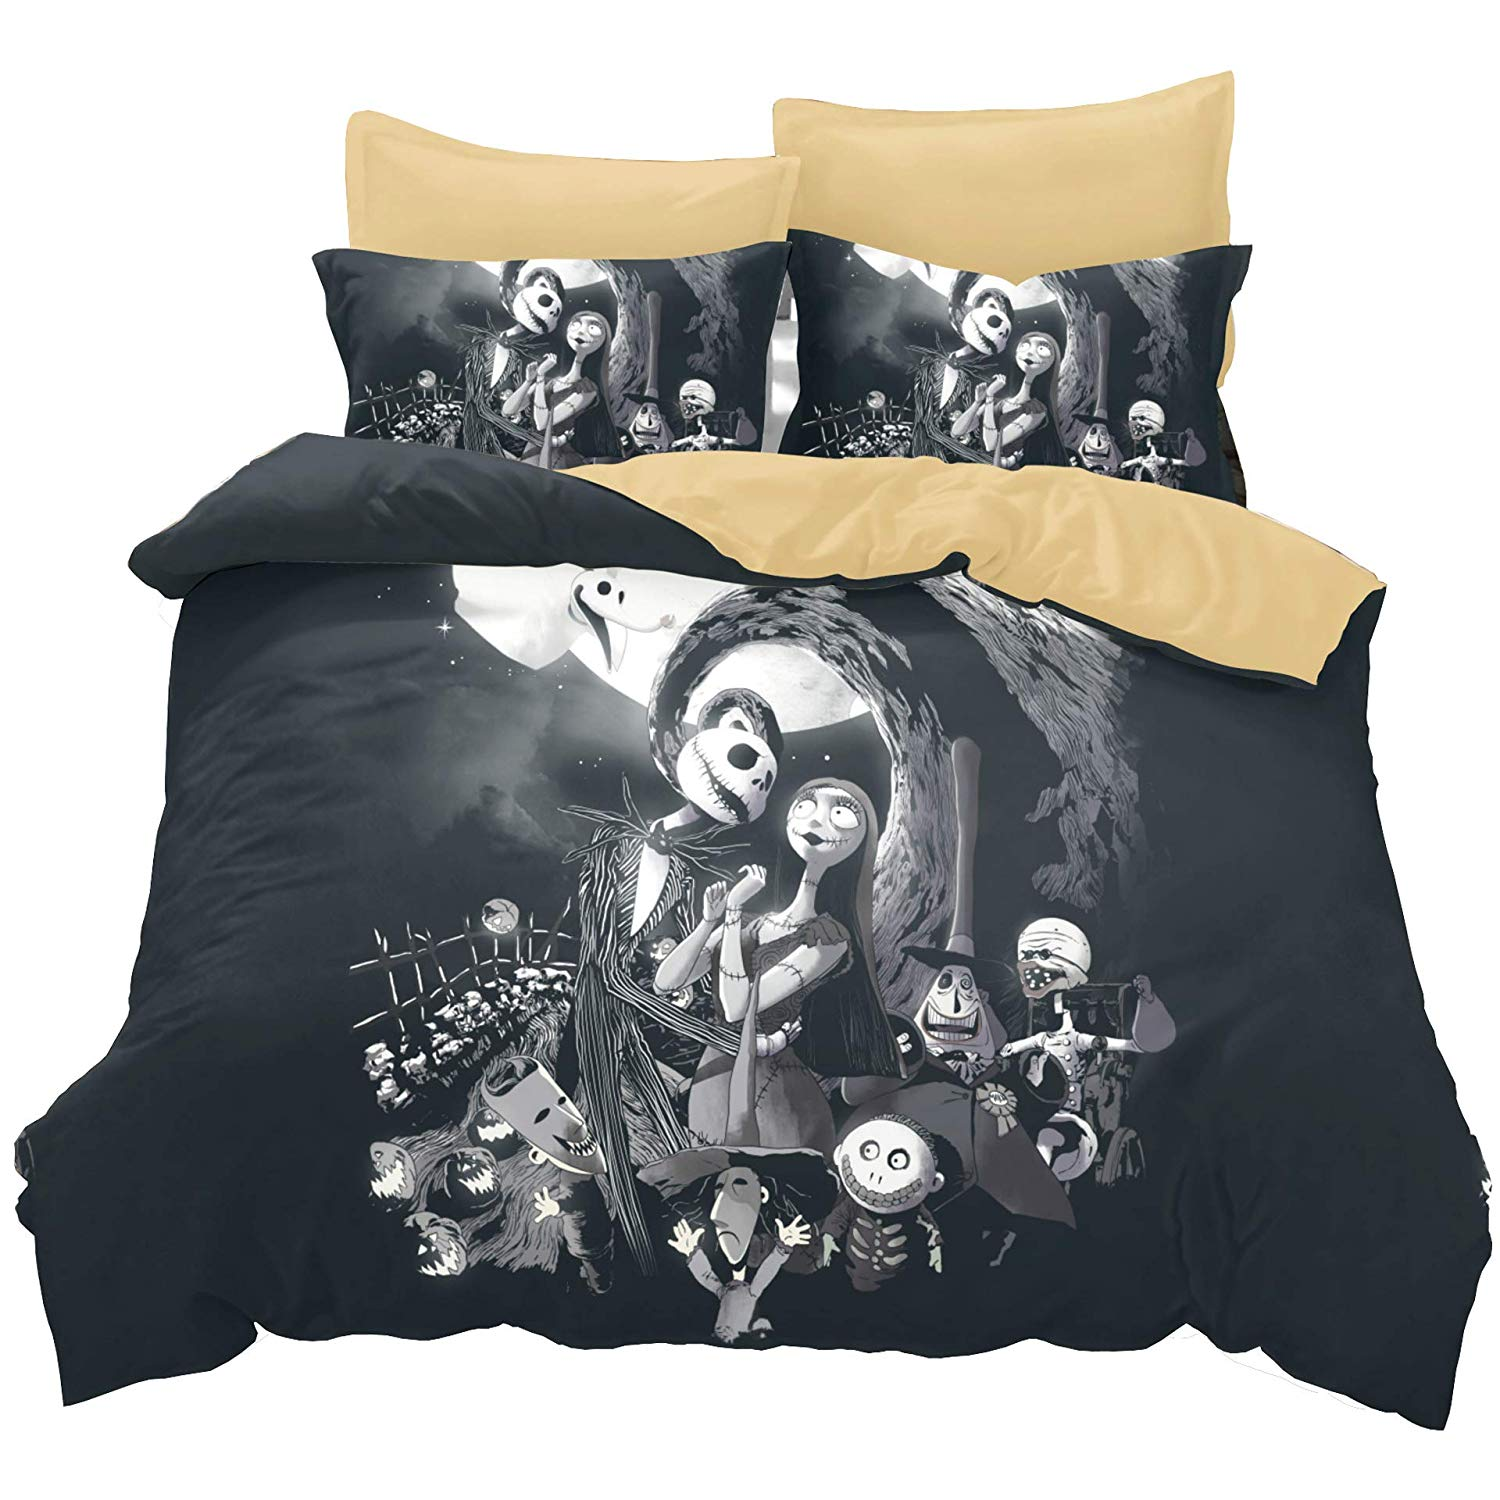 KTLRR Nighmare Before Christmas Duvet Cover Set - Buy Christmas Duvet Covers